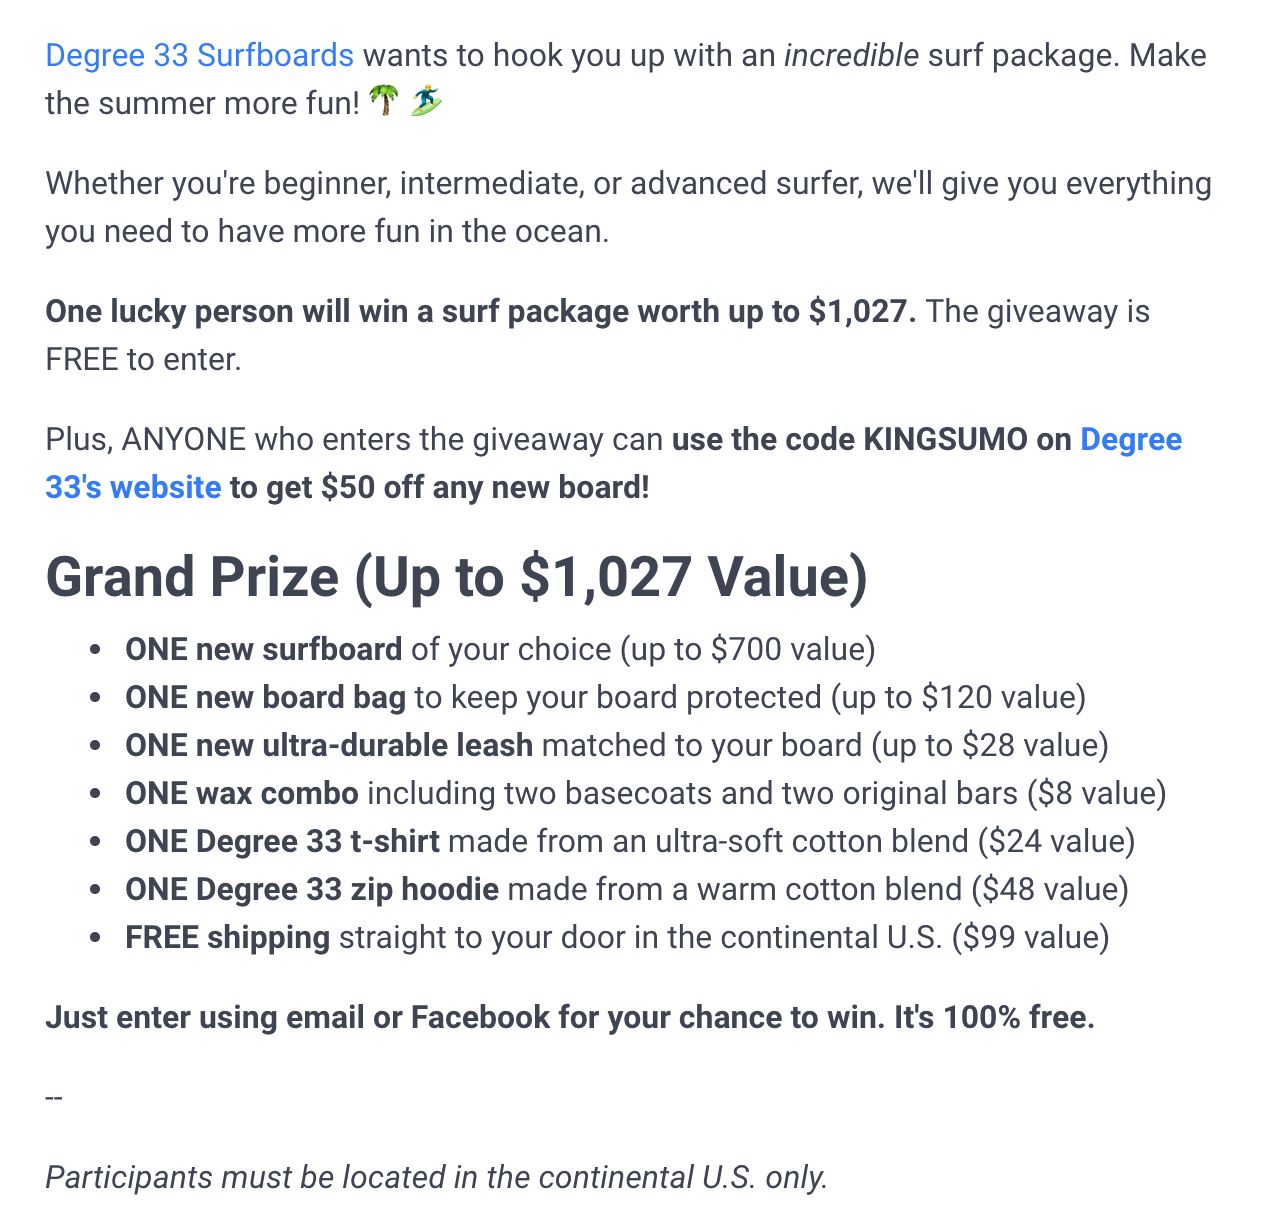 Screenshot showing copy for a sweepstakes